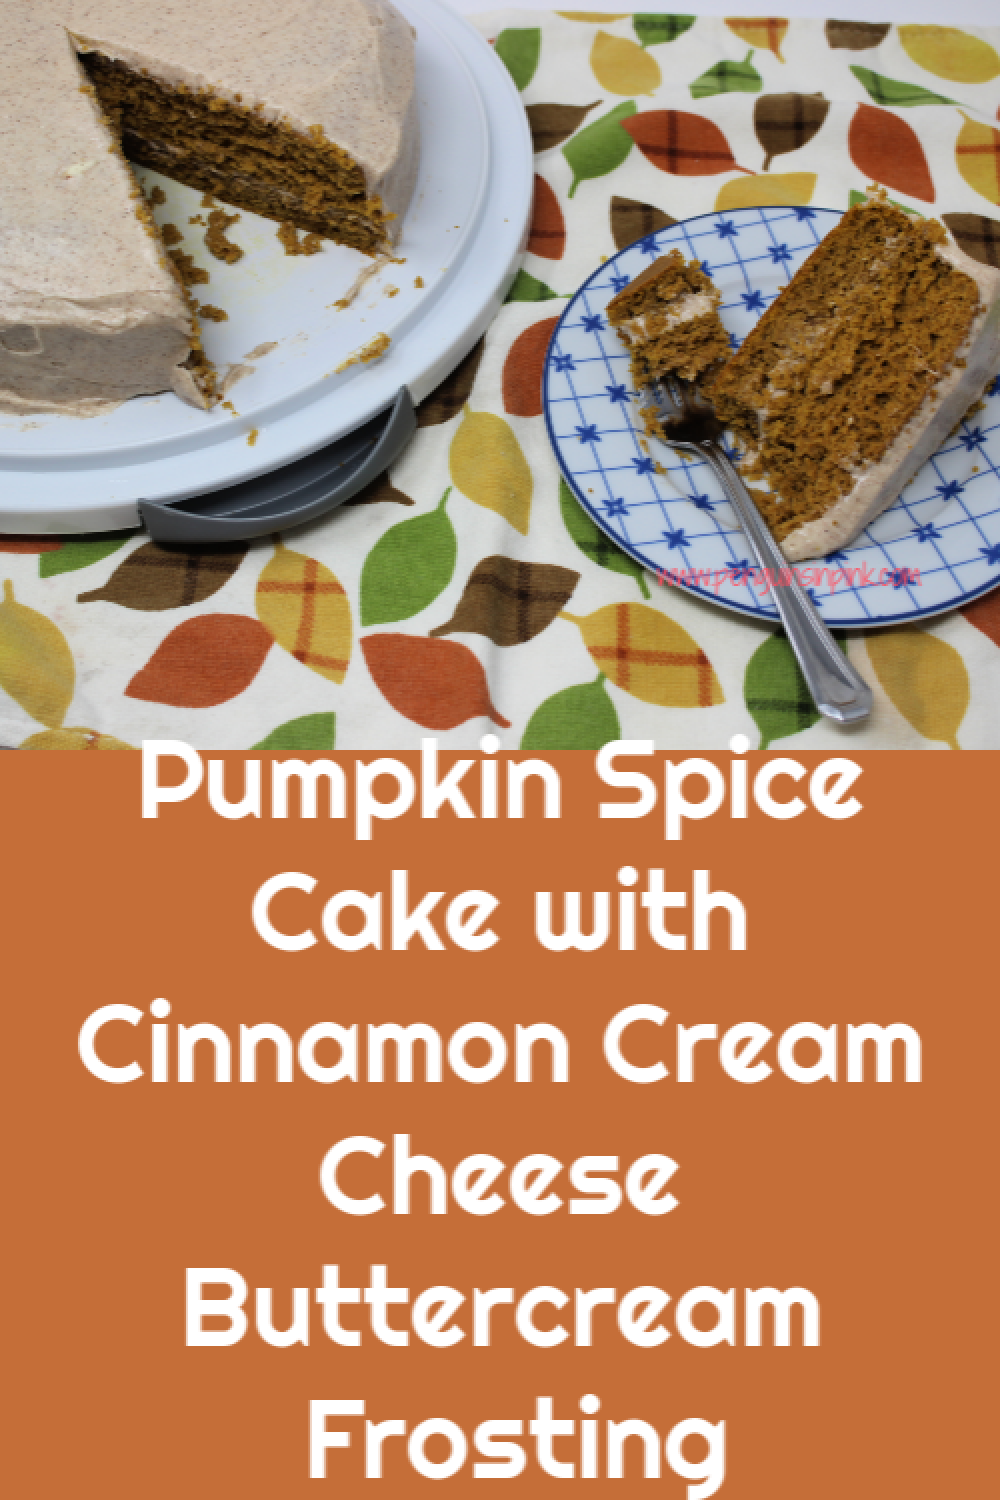 Pumpkin Spice Cake with Cinnamon Cream Cheese Buttercream Frosting is a moist pumpkin cake topped with lush cinnamon cream cheese buttercream frosting.